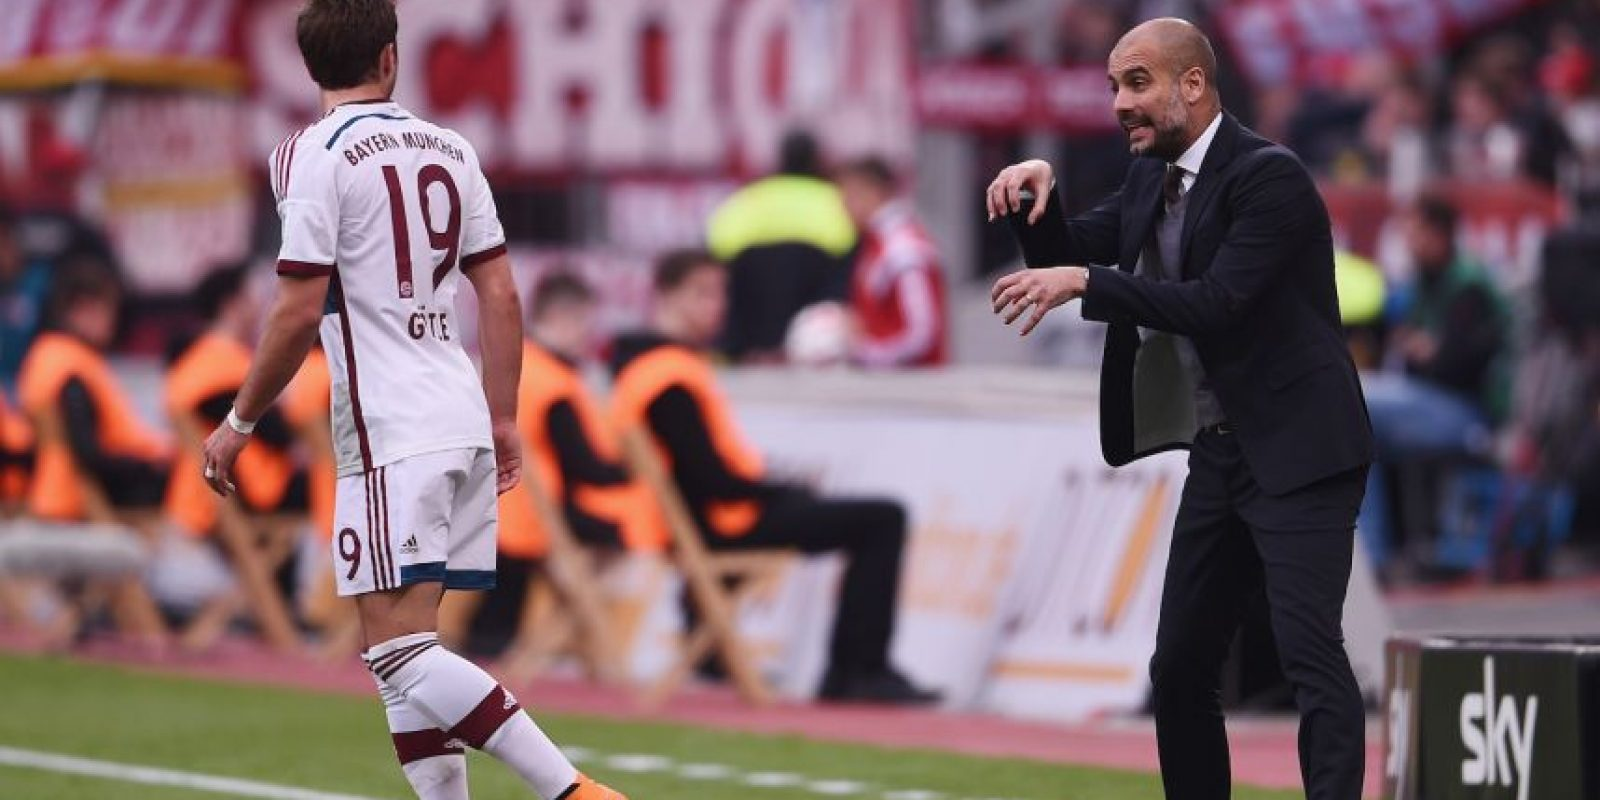 Guardiola vuelve al Camp Nou Foto: Getty Images